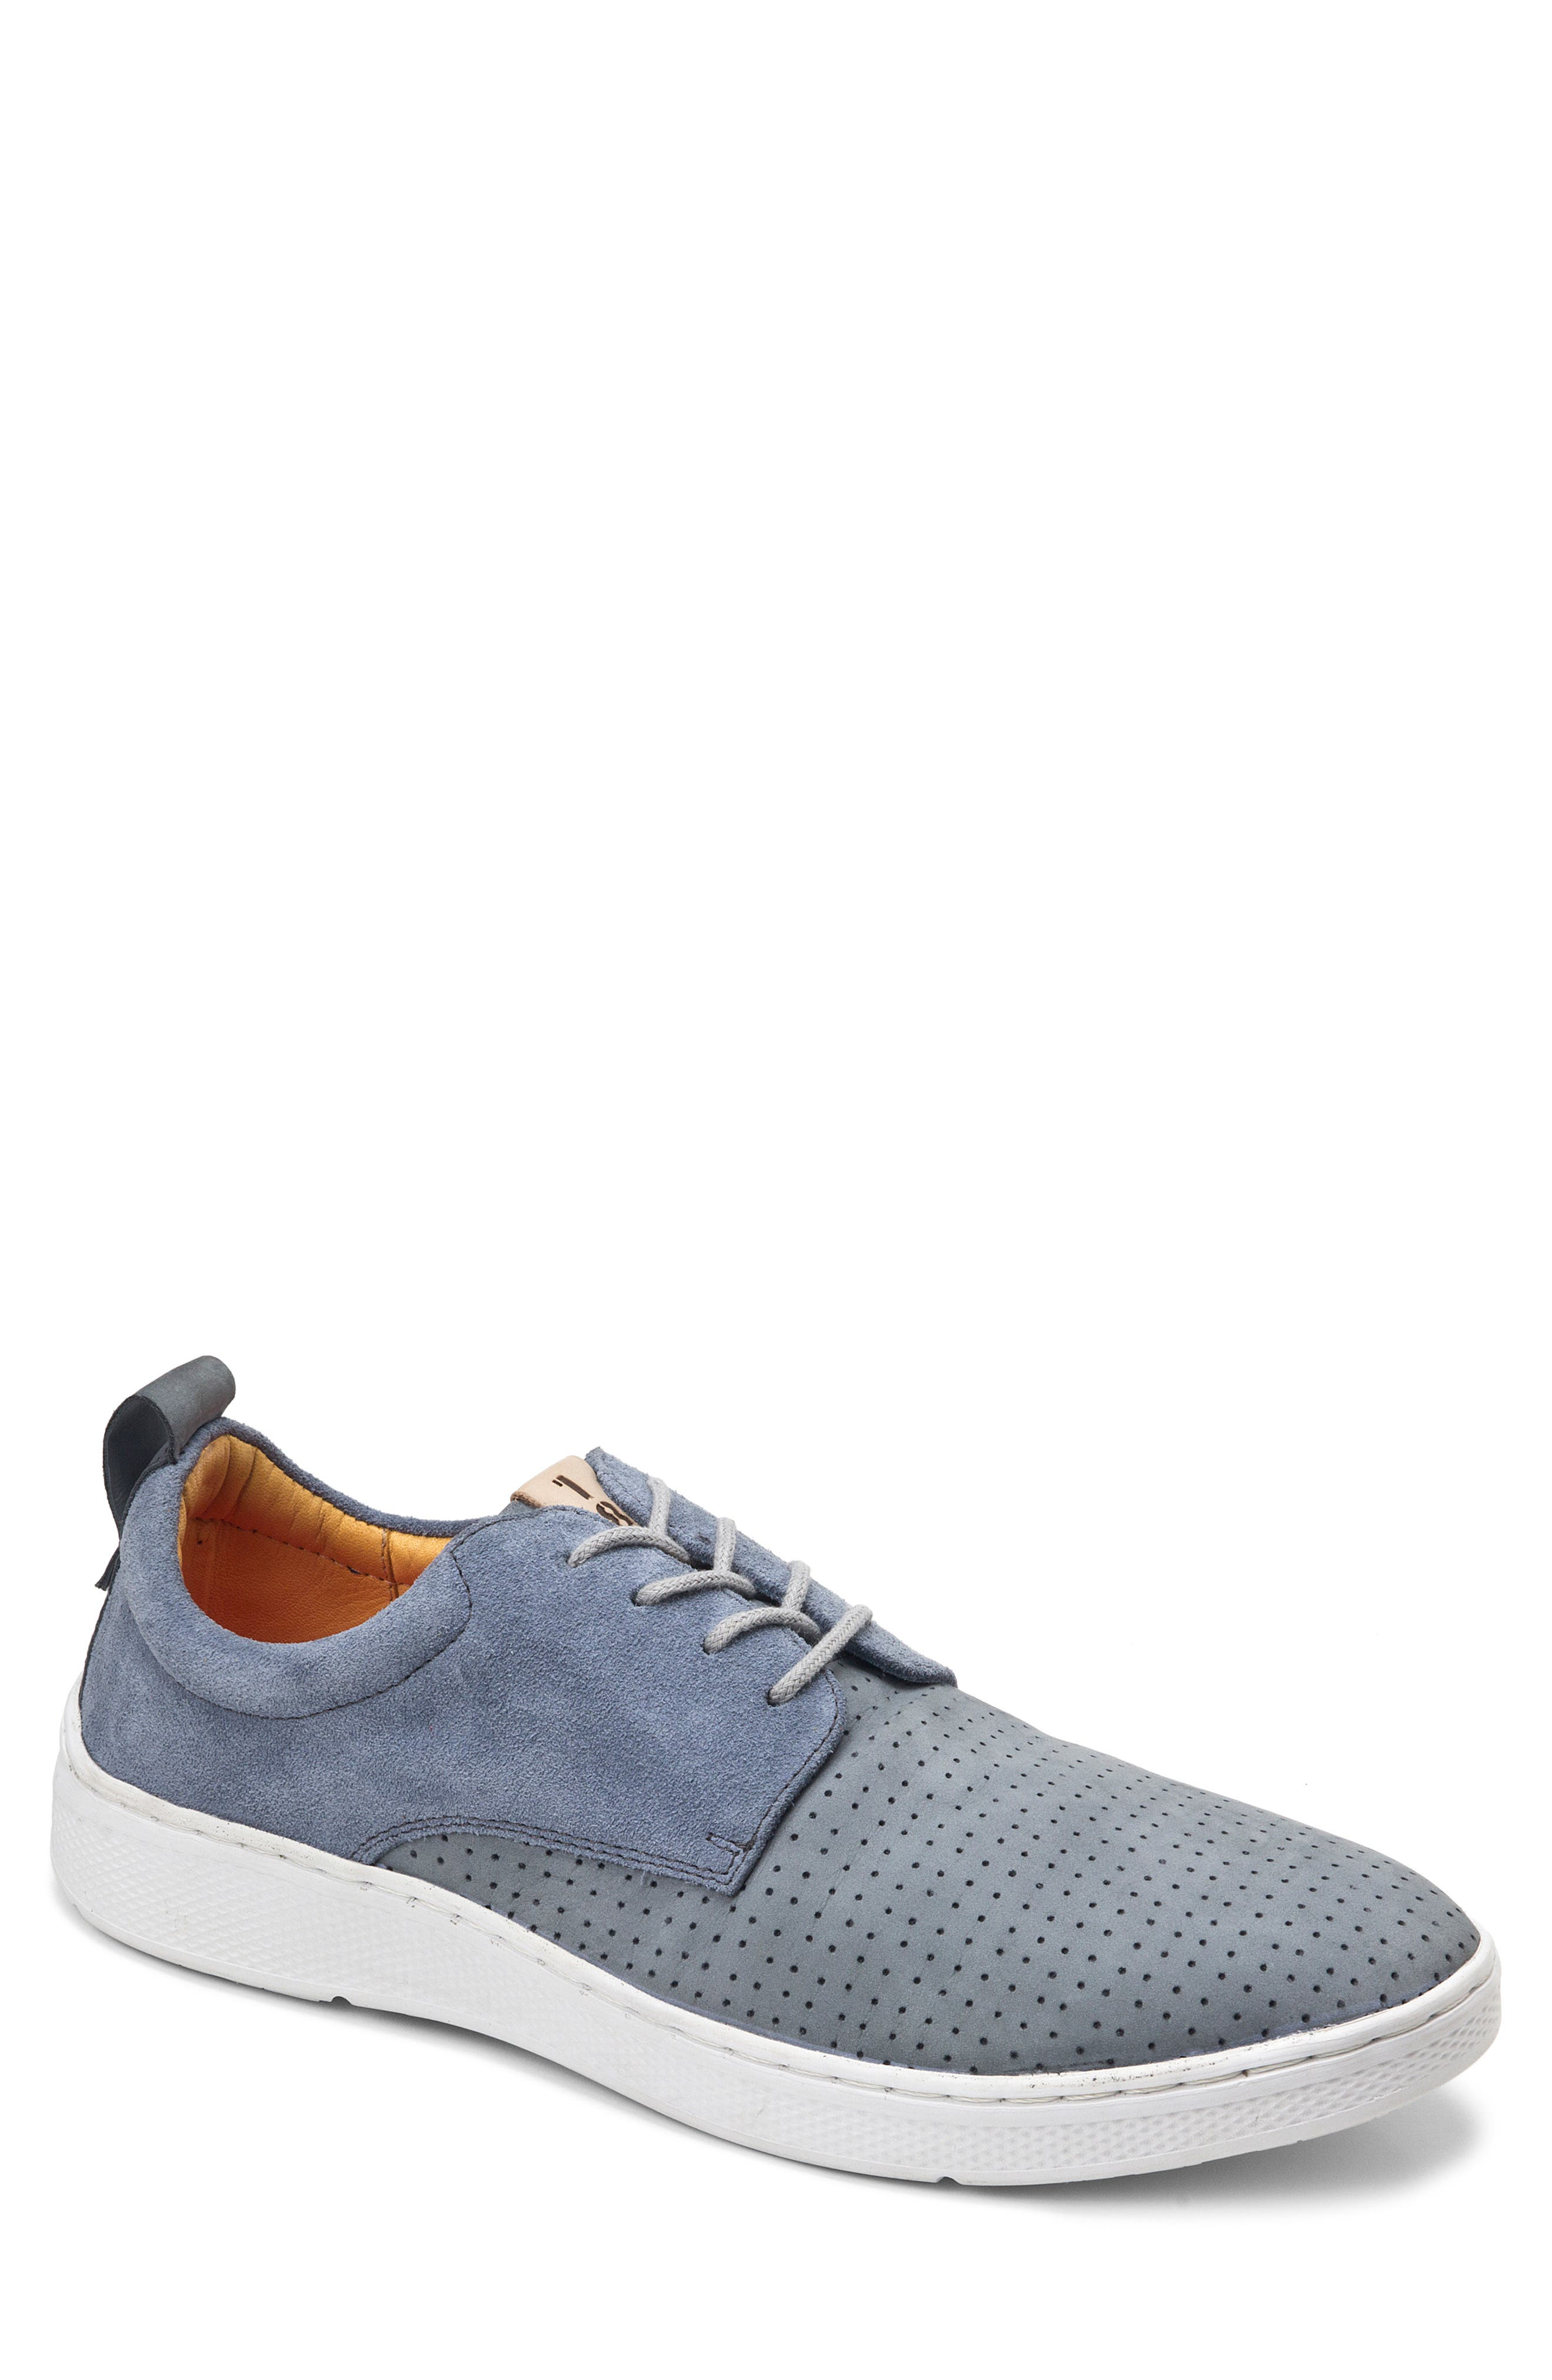 SANDRO MOSCOLONI Mack Perforated Derby, Main, color, GREY LEATHER